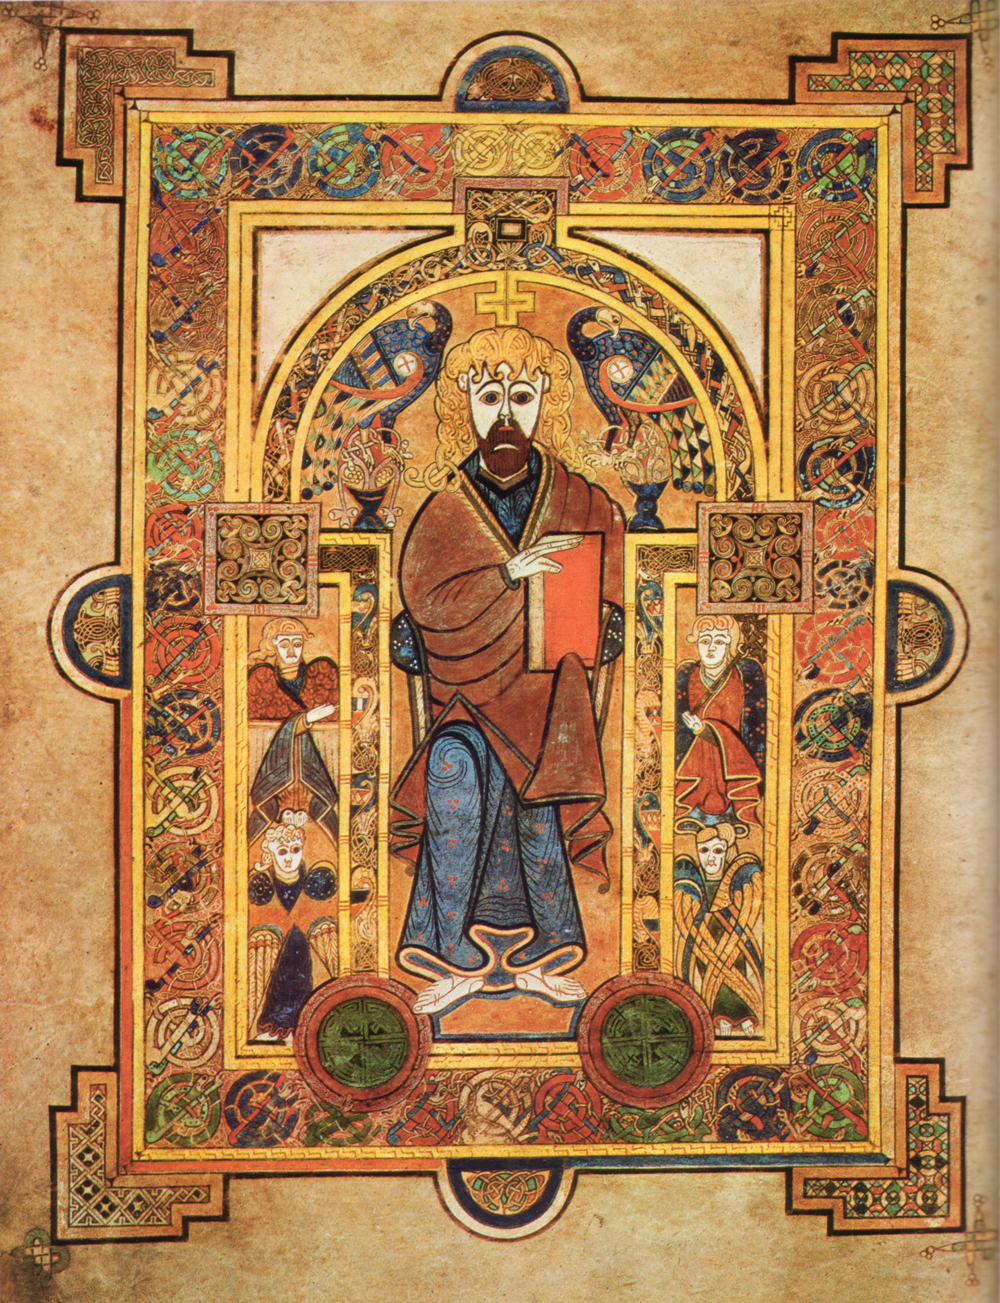 Christ Enthroned, Book of Kells